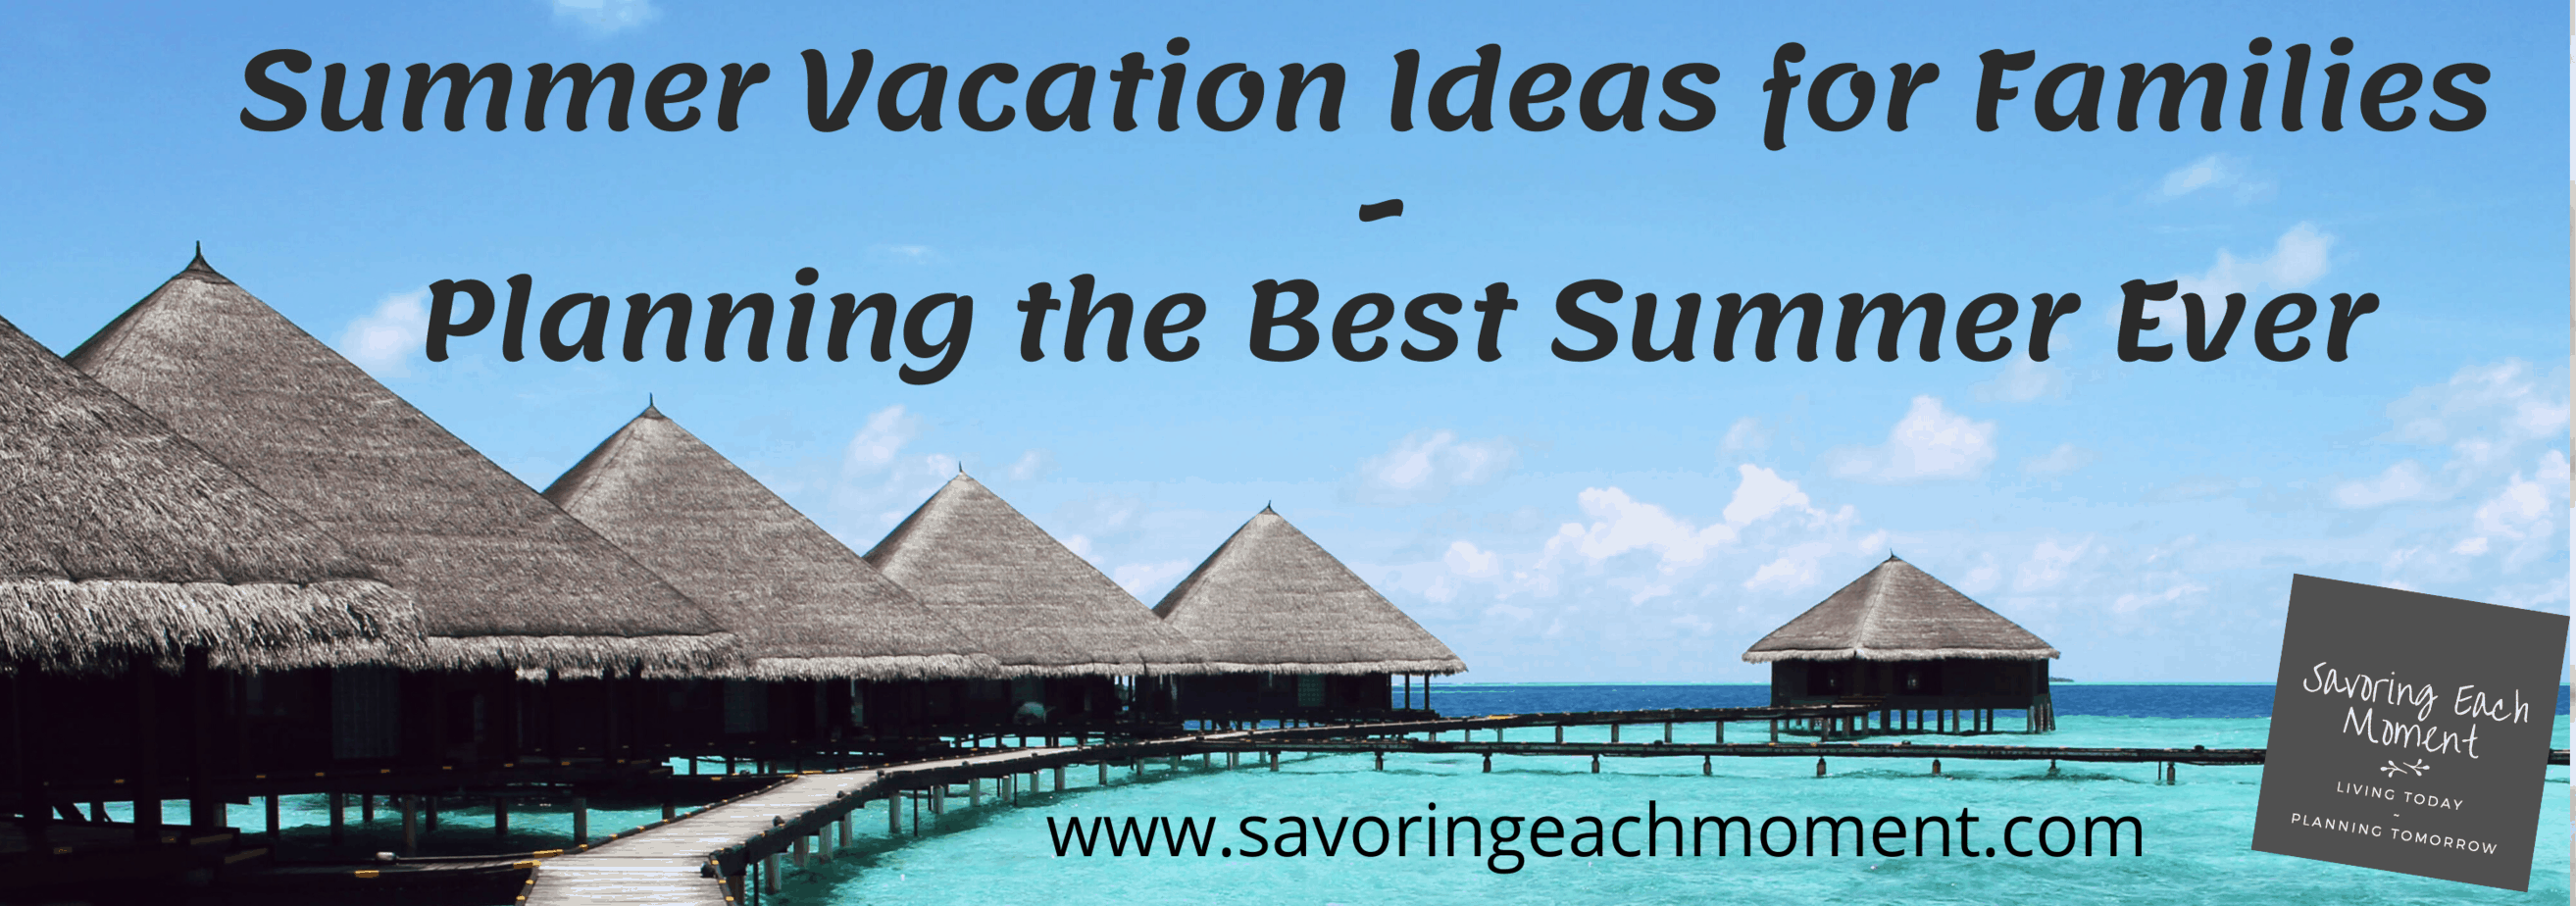 Summer Vacation Ideas with Families